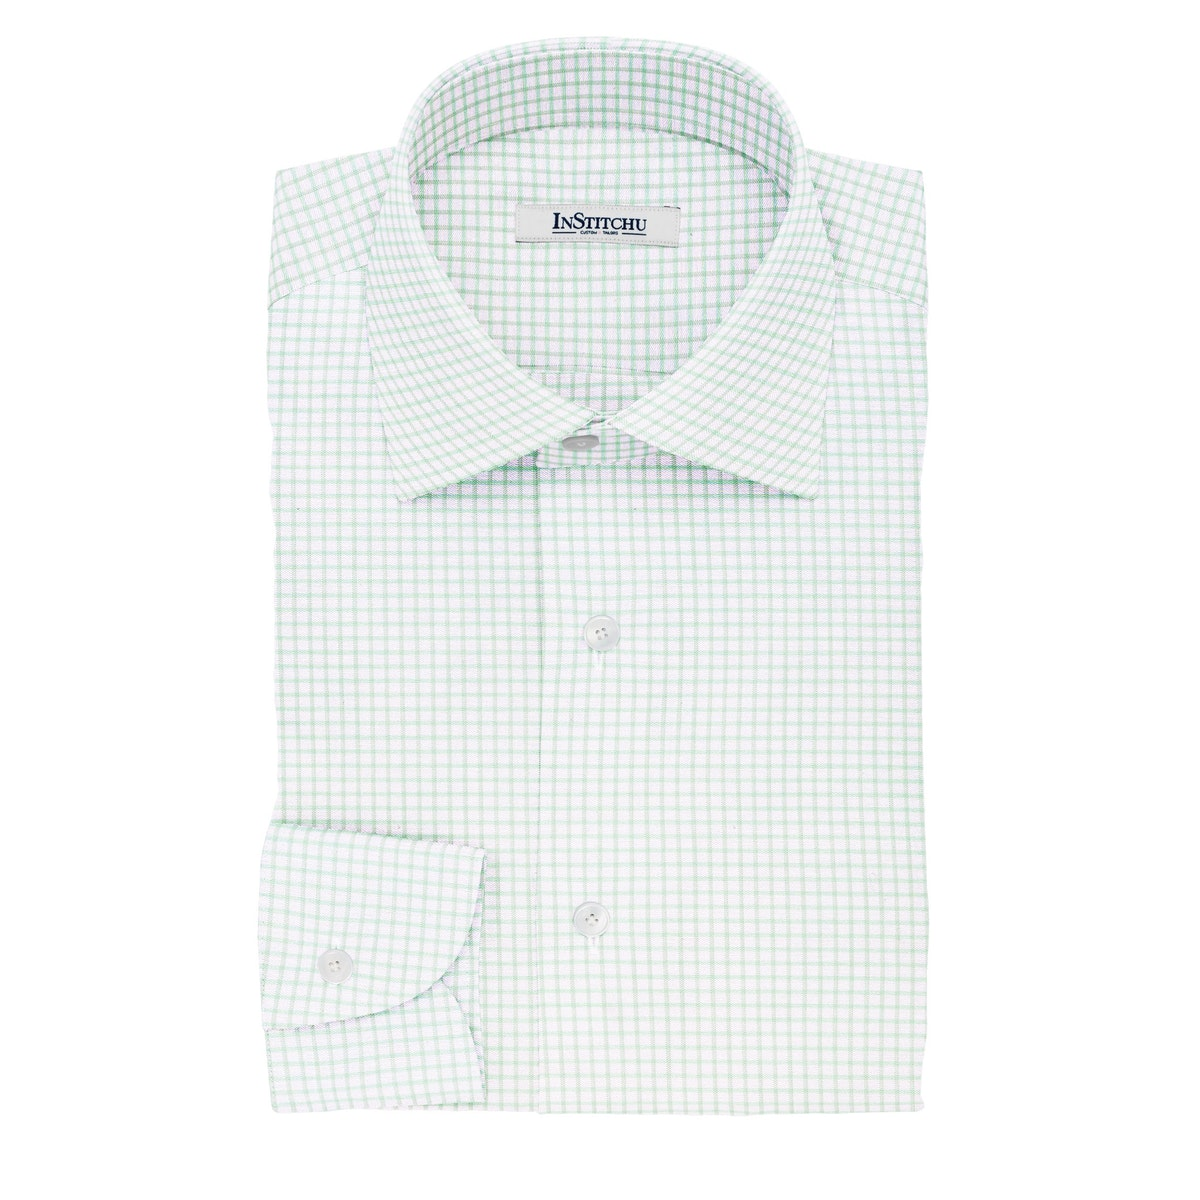 InStitchu Collection The Shelley Green and White Check Cotton Shirt